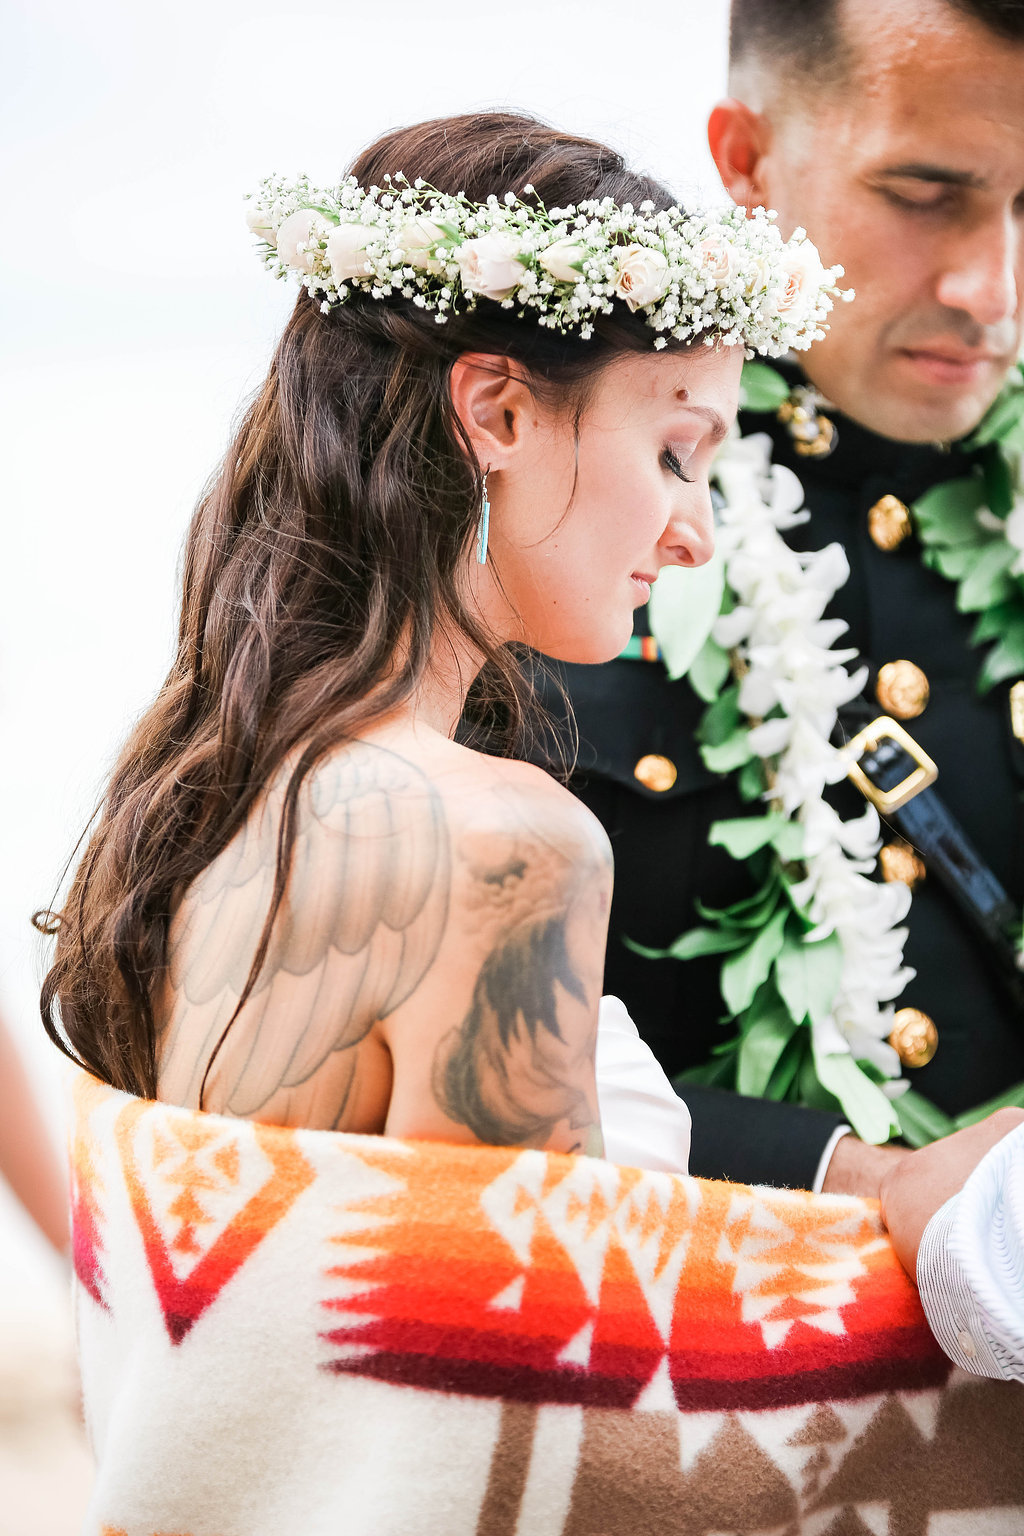 06.11.14-Lauren & Aaron-Ever After Events-Ashley Goodwin Photography-Kualoa Ranch-Hawaii Wedding-Military Wedding (33)